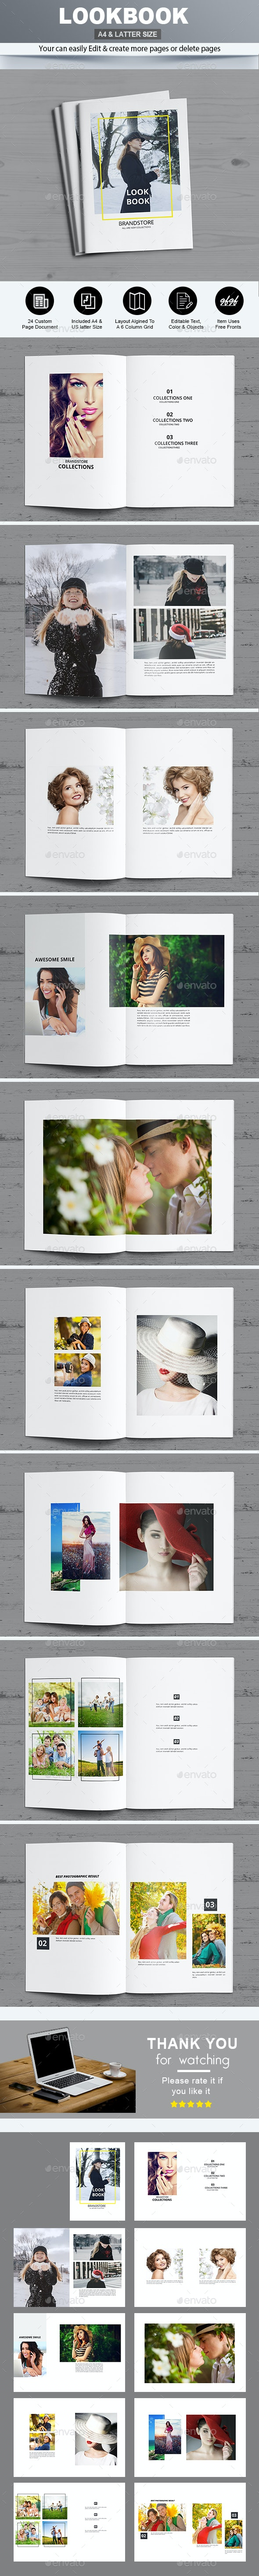 Fashion Lookbook - Photo Albums Print Templates